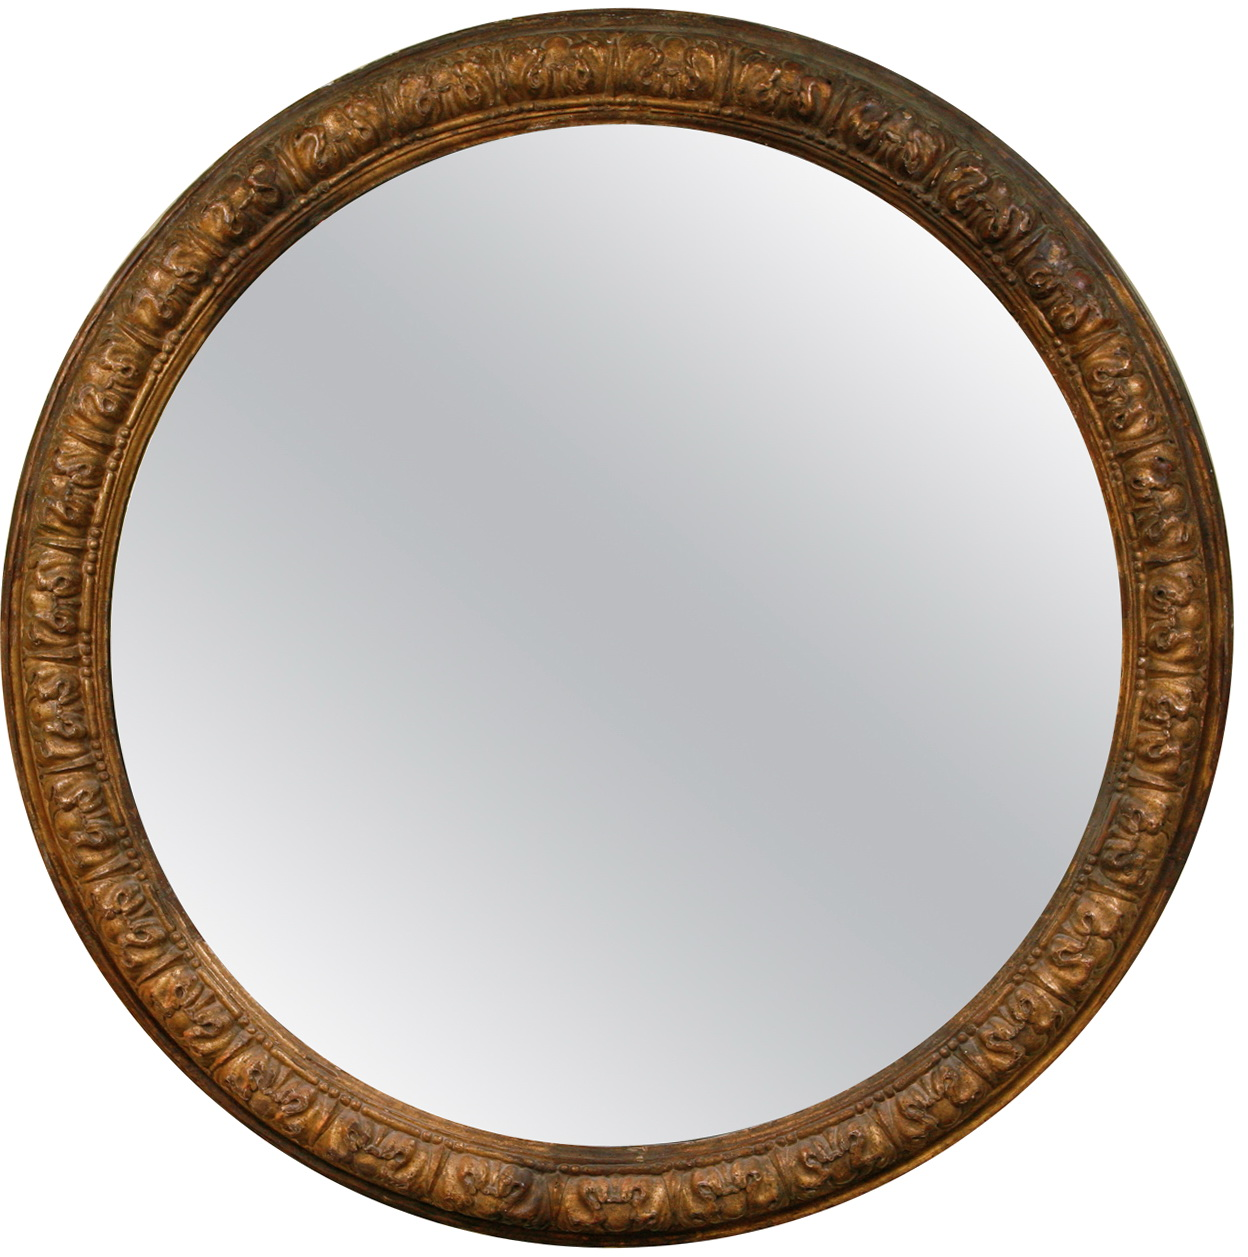 Large round wall mirror home design ideas for Big circle mirror